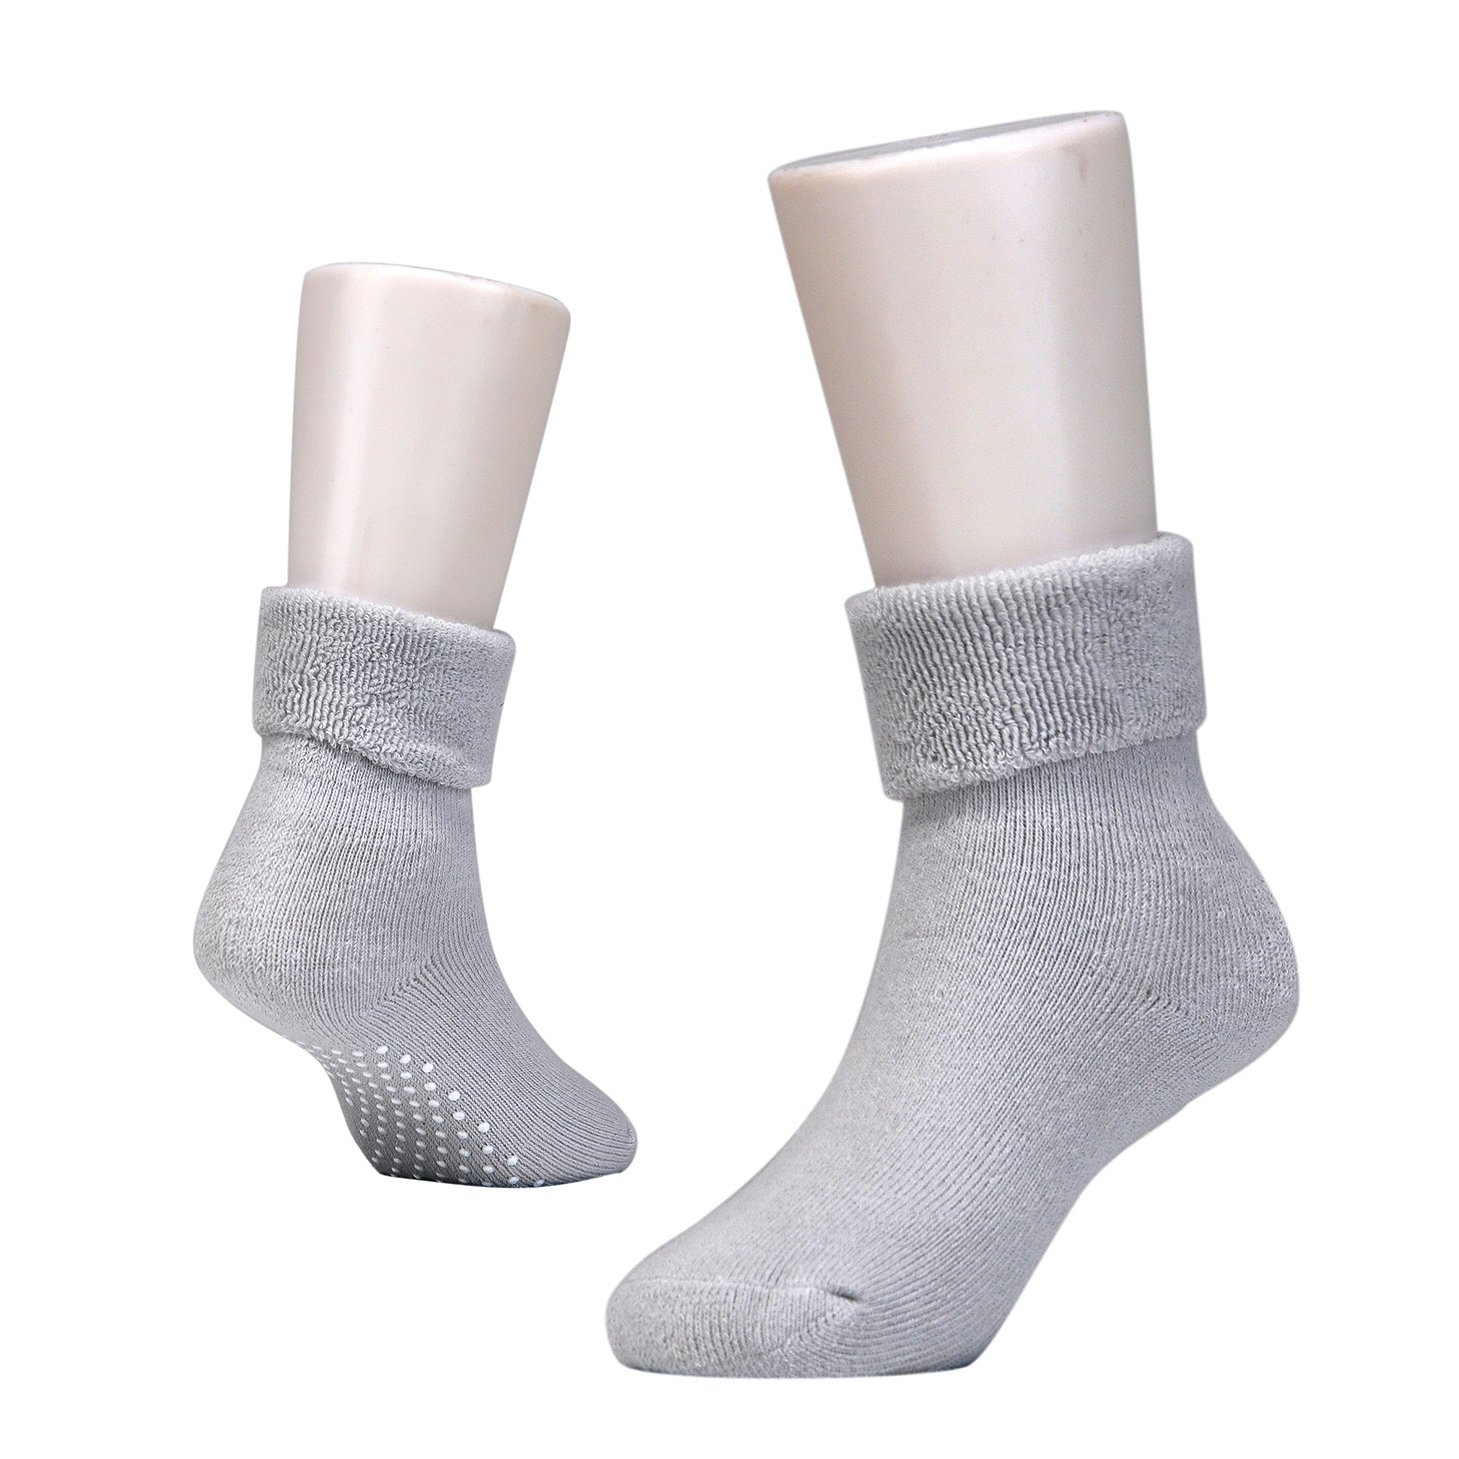 Epeius Baby Boys Non-Skid Turn Cuff Socks Terry Cotton Booties Pack of 6